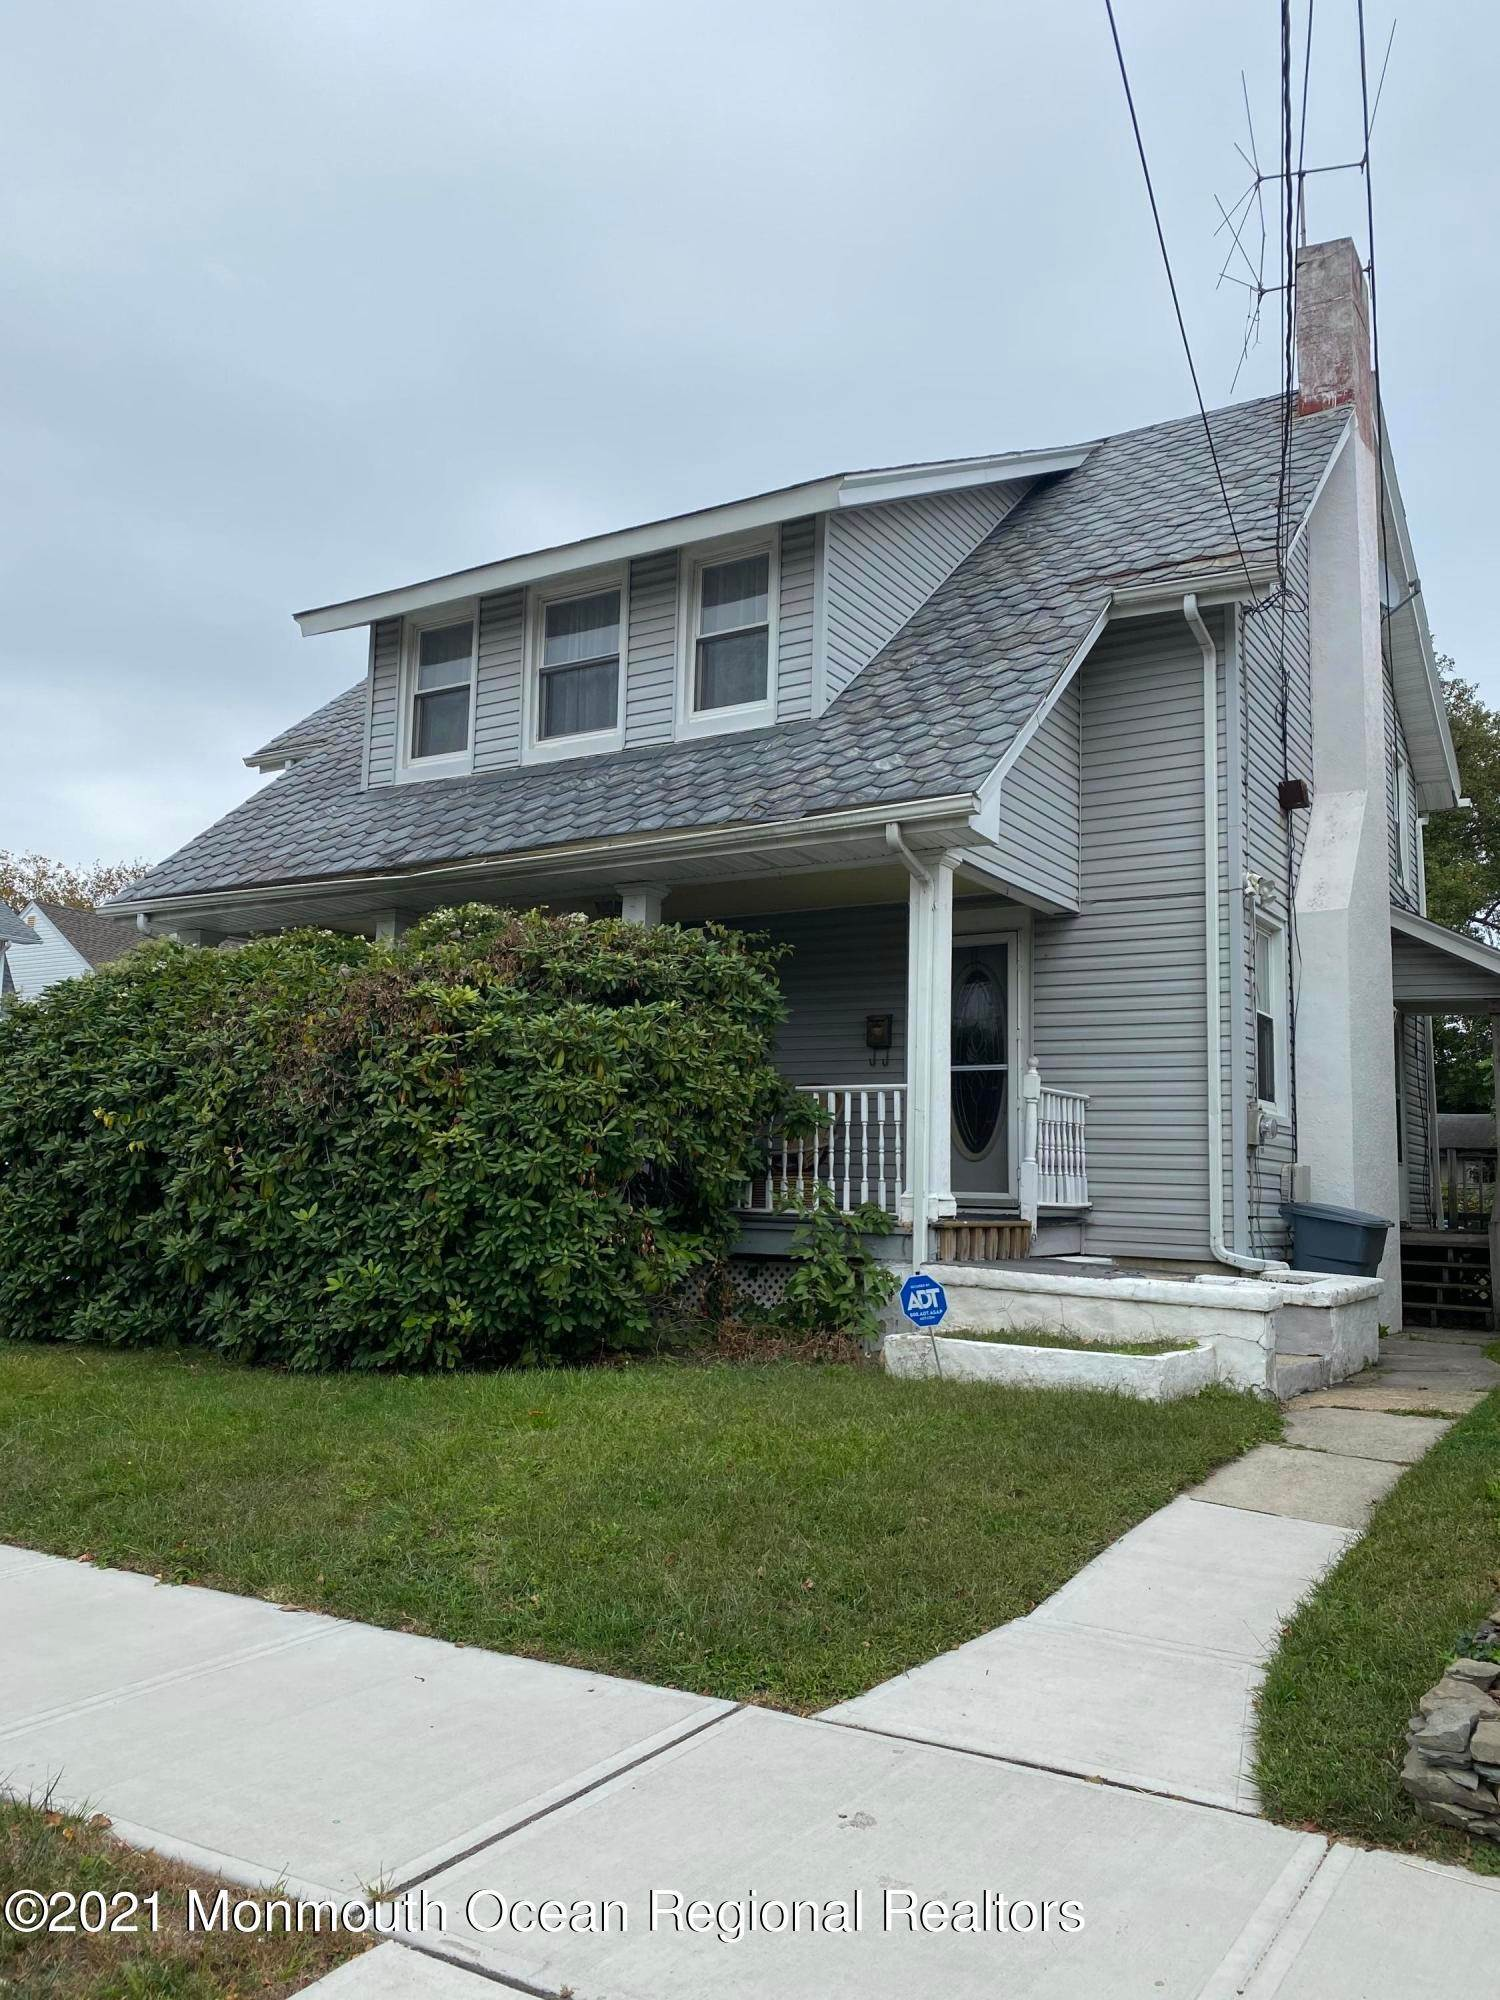 Single Family Homes for Sale at 1308 Bridge Street Asbury Park, New Jersey 07712 United States